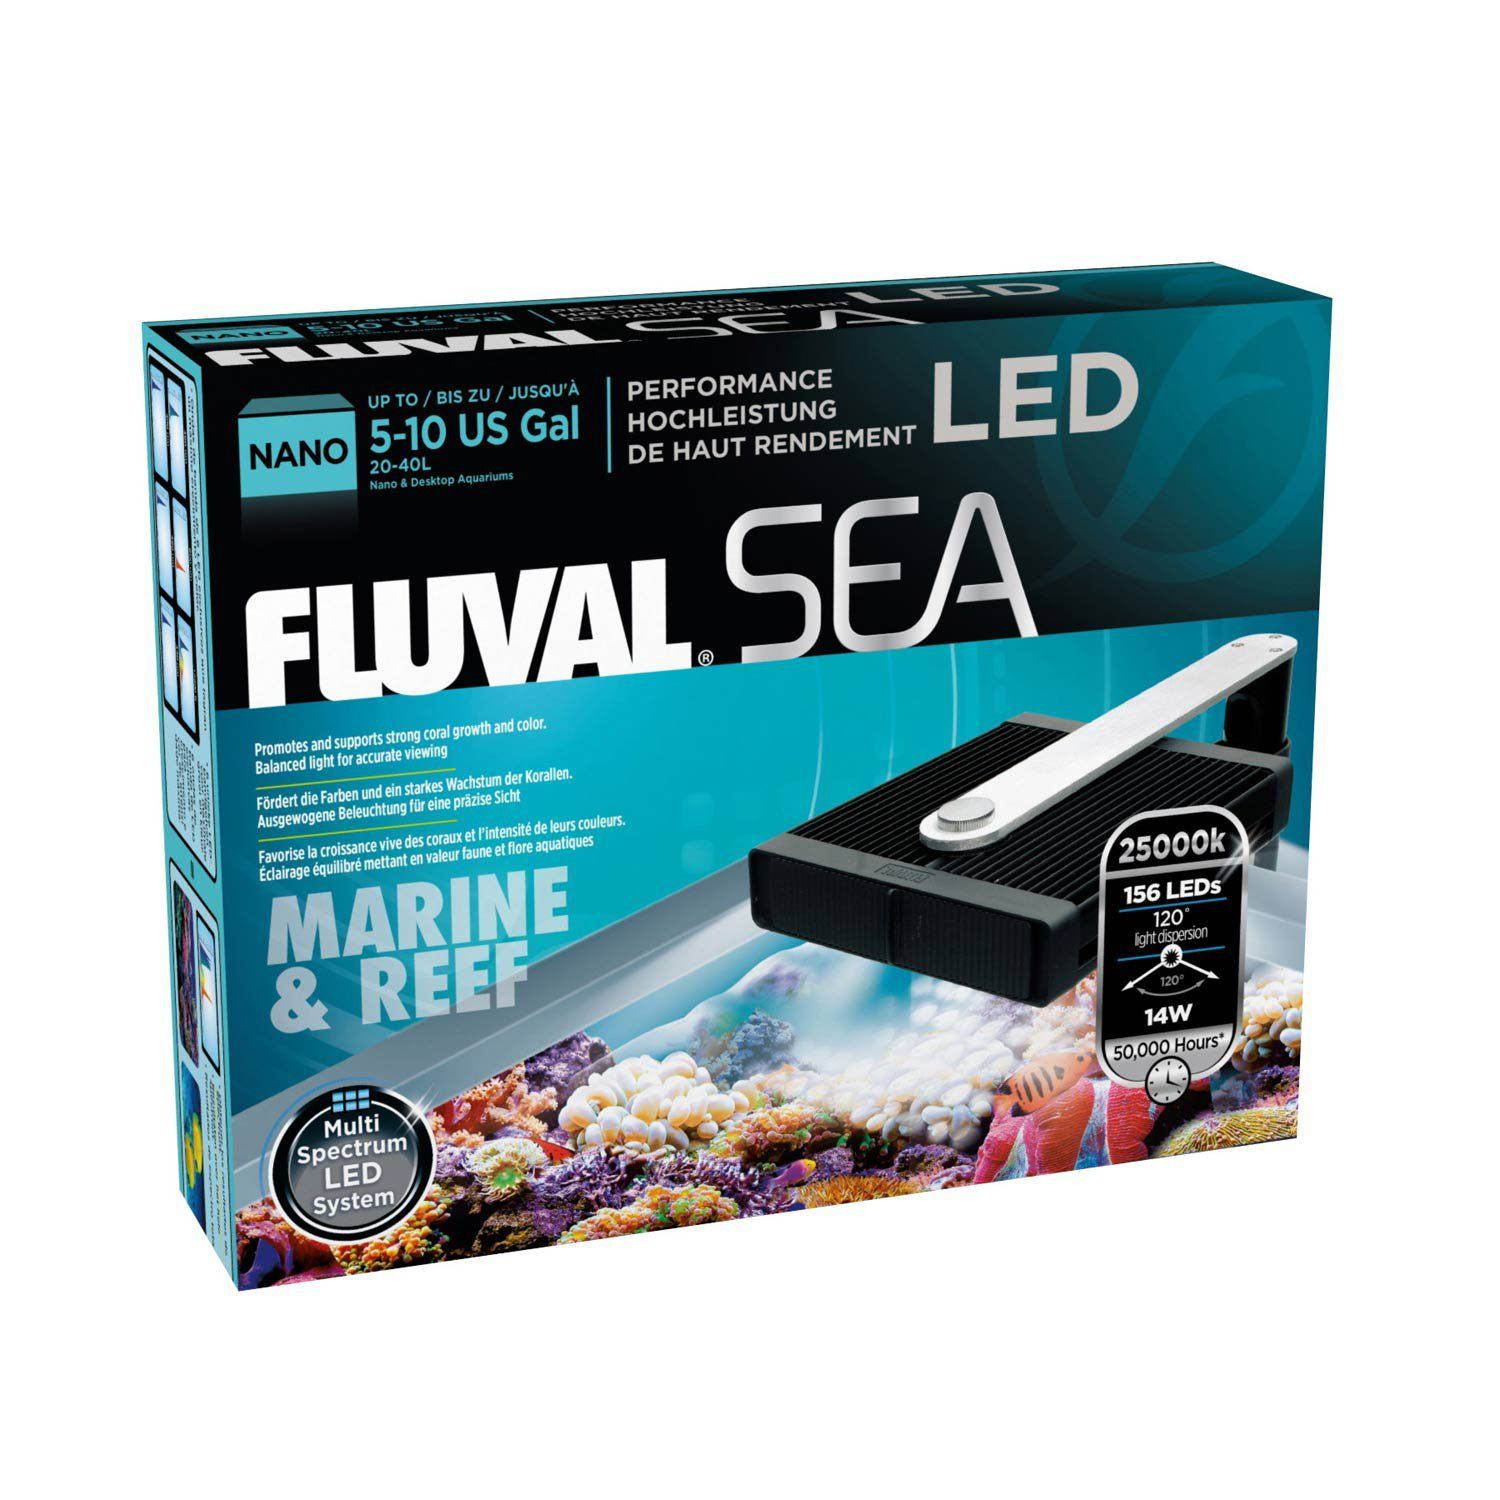 Led Licht Für Nano Aquarium Fluval Sea Marine Reef Led Nano Aquarium Lamp 6